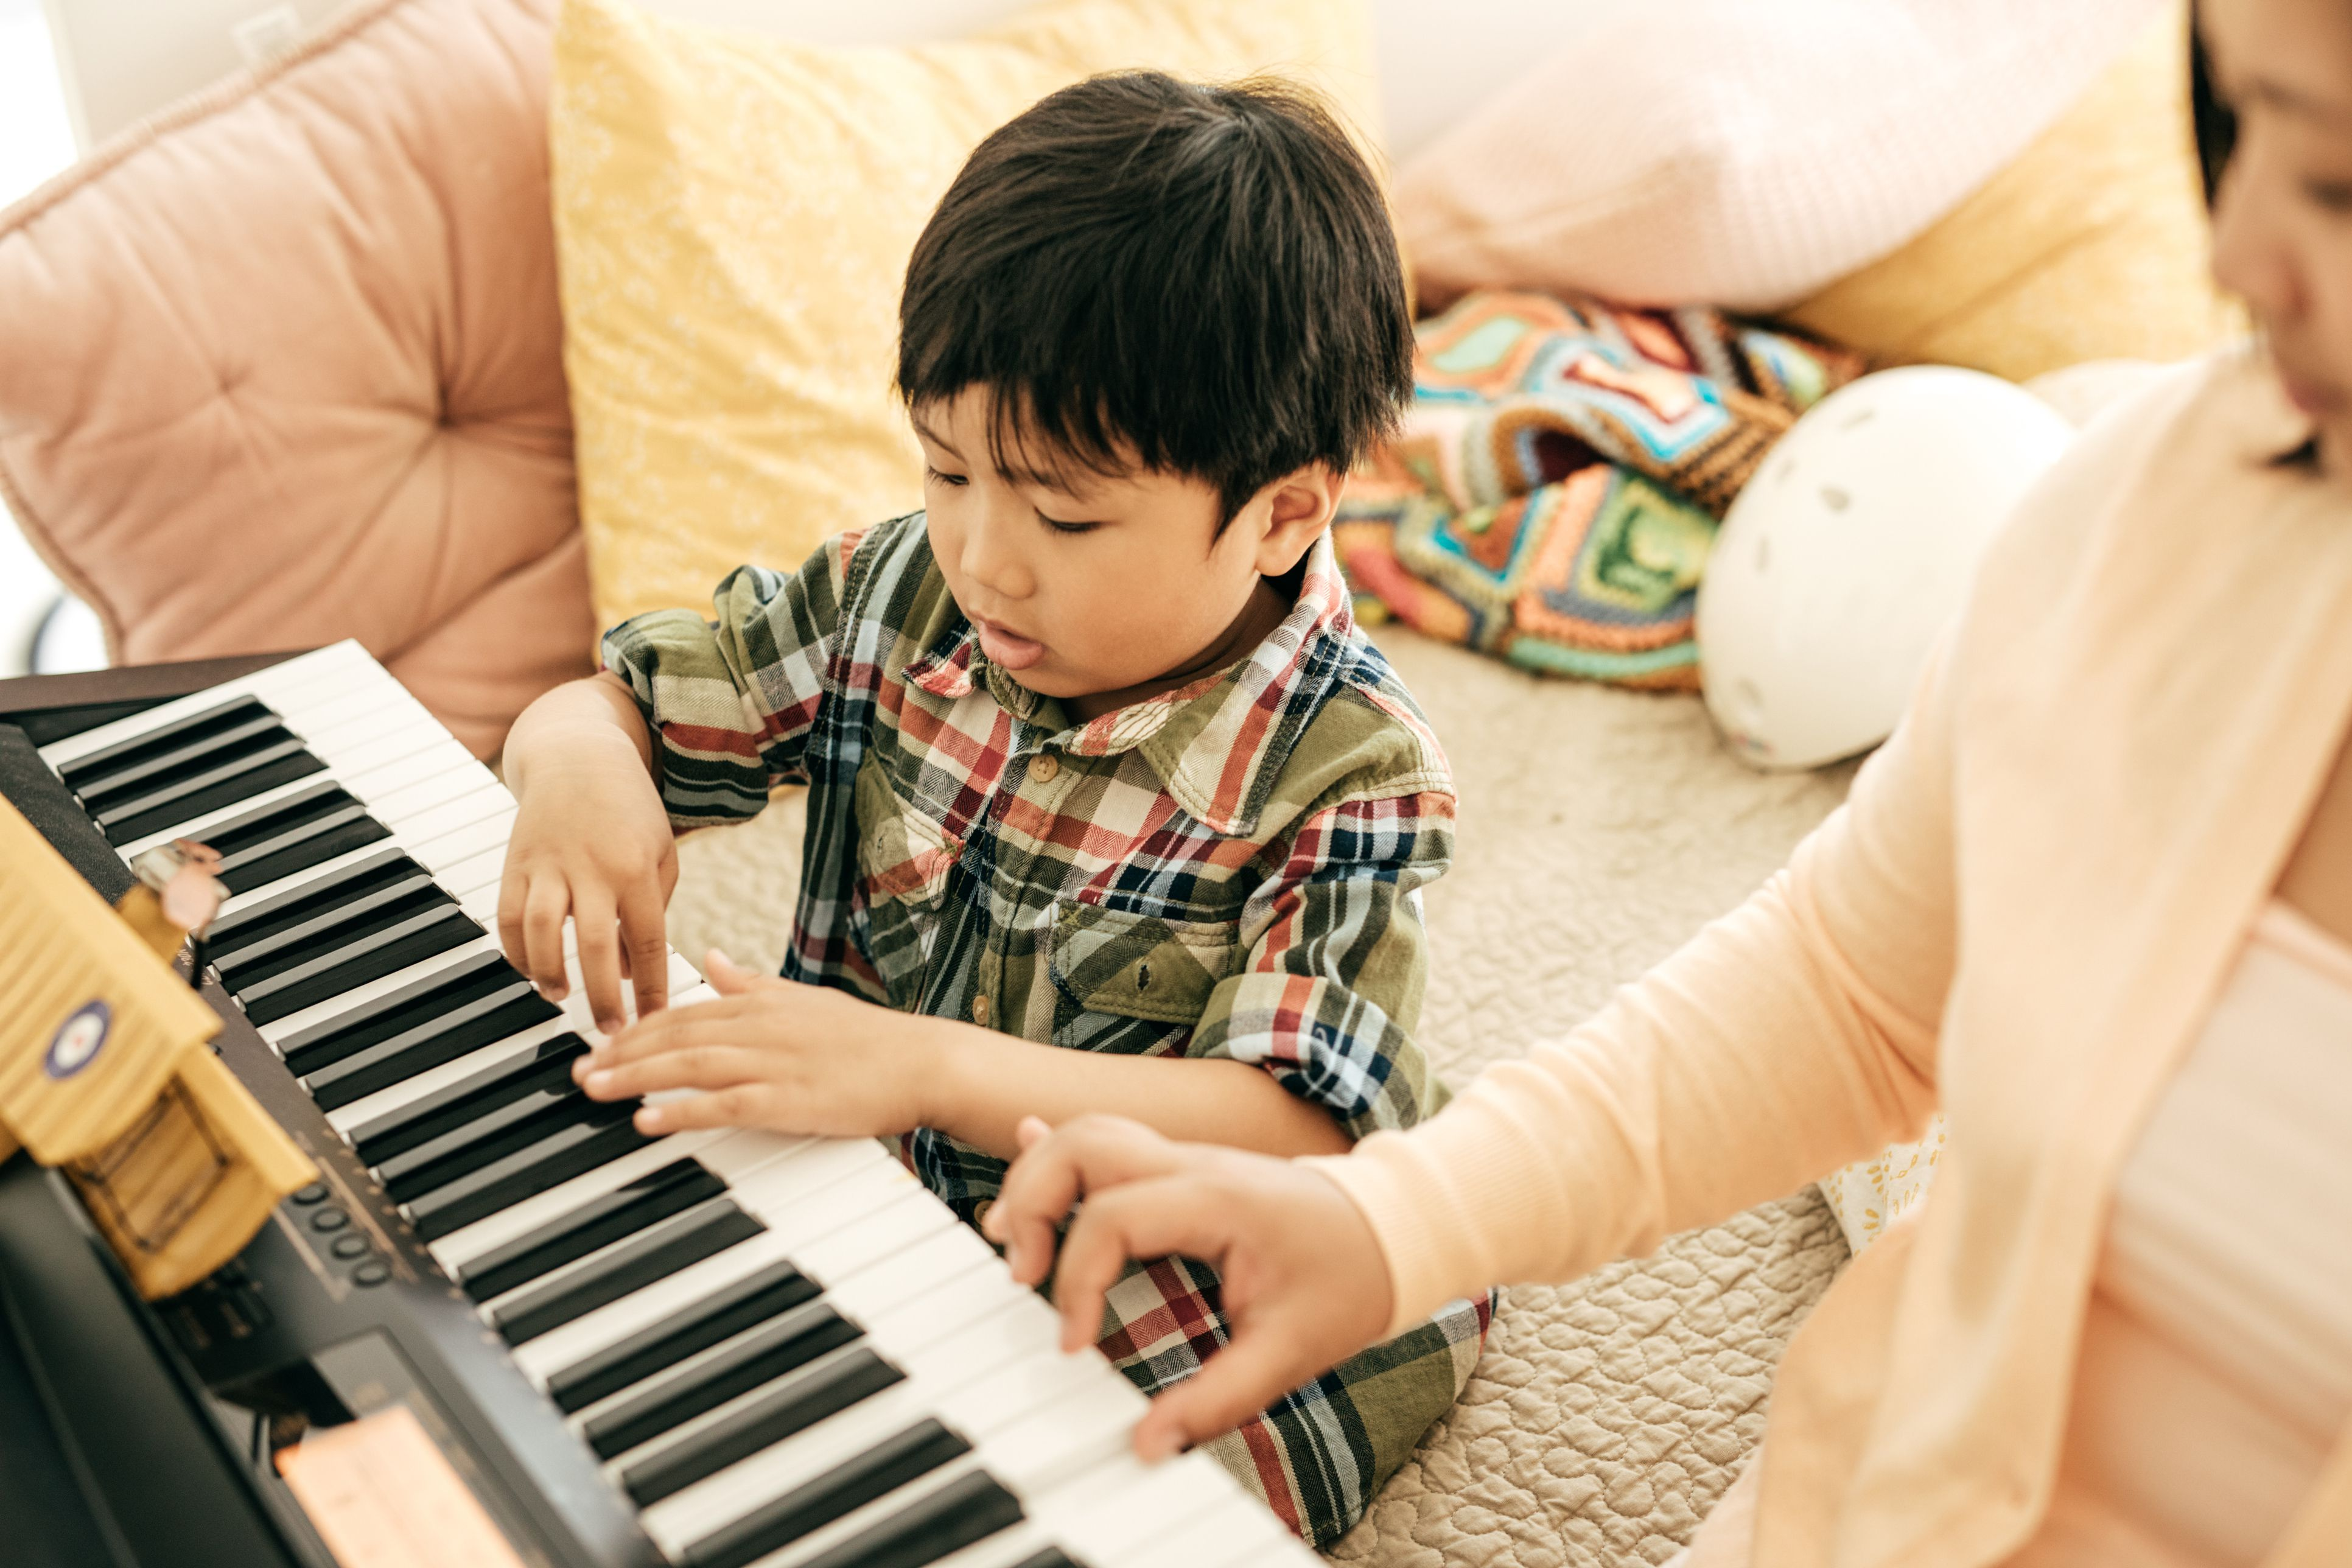 Mother and Child playing on keyboard